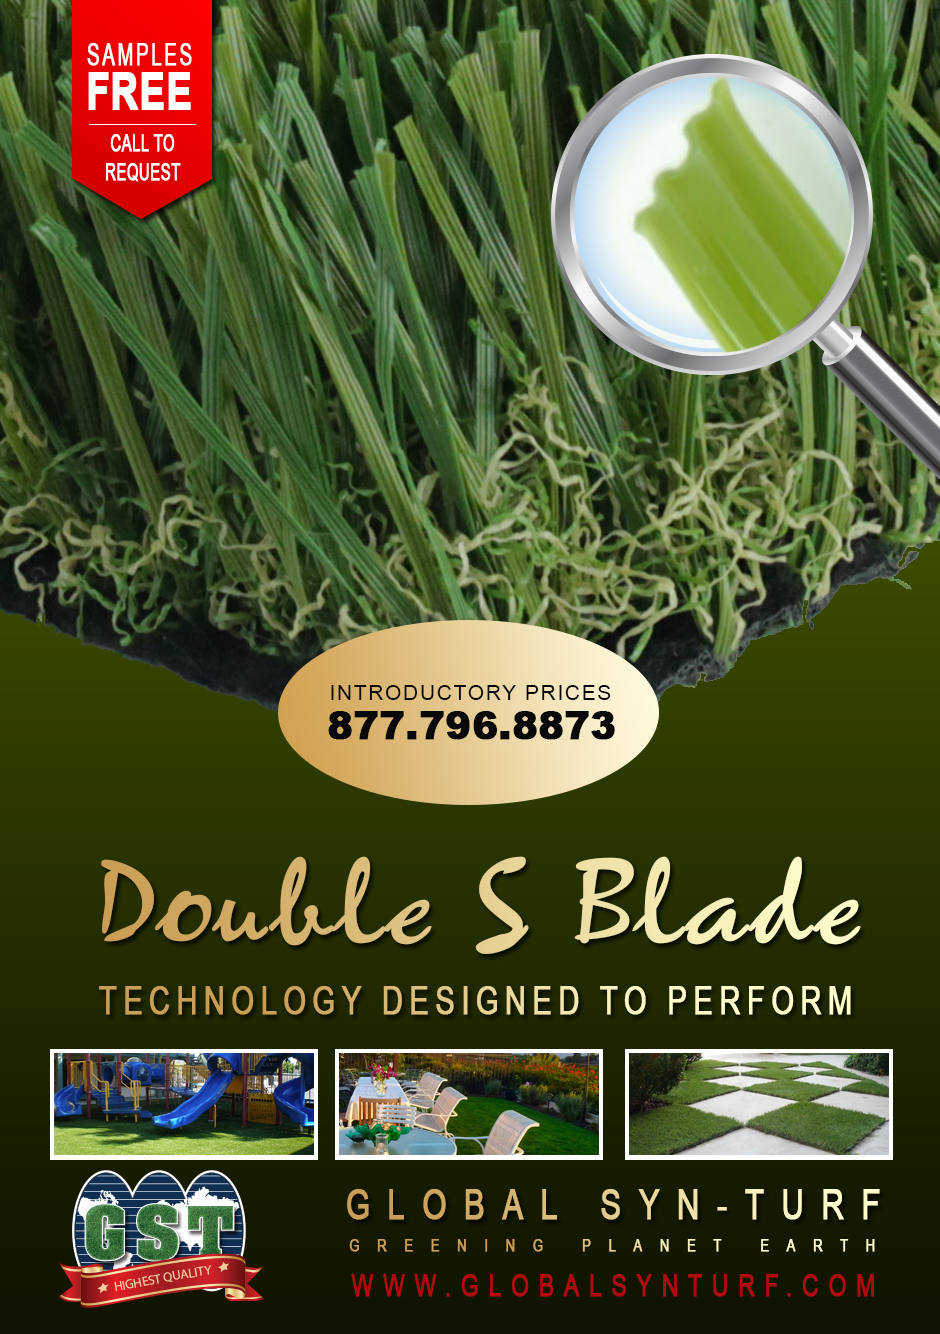 artificialgrass Global Syn-Turf Launches Premium Double S Blade Artificial Grass Technology